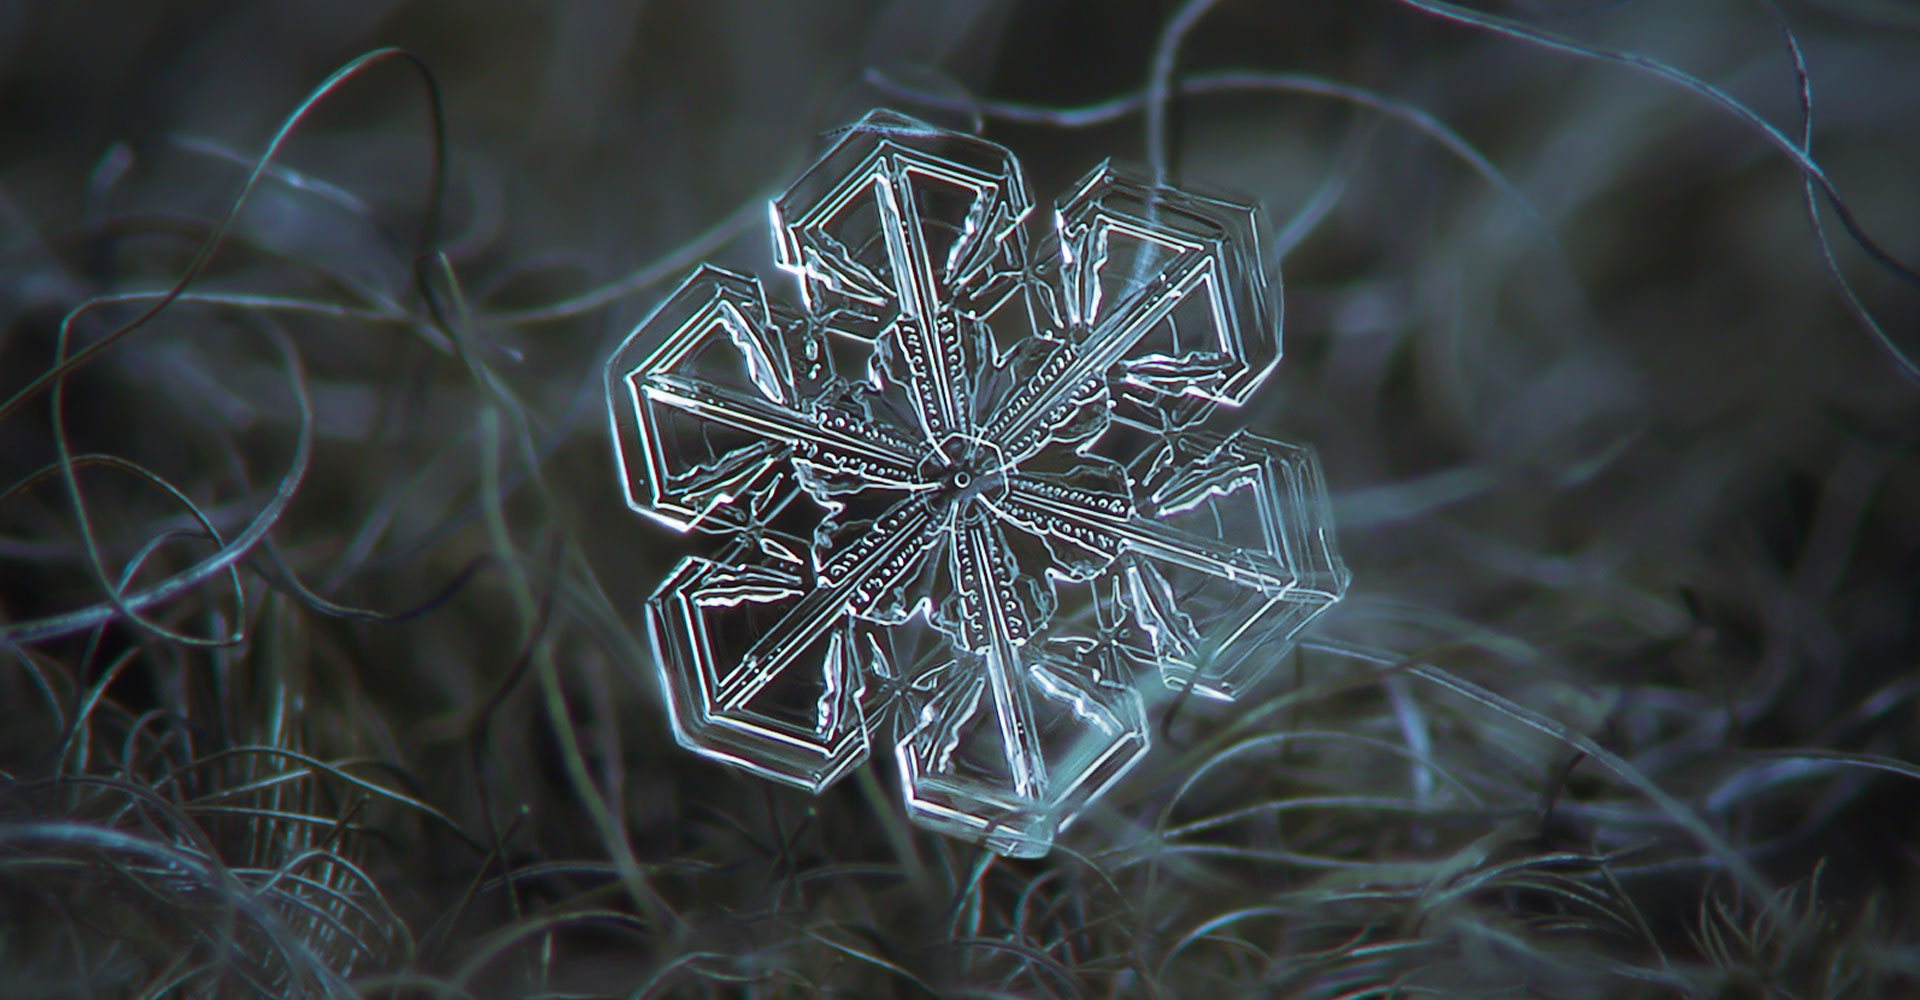 Falling Snow Wallpaper Iphone Snowflake Macro Wallpapers High Quality Download Free